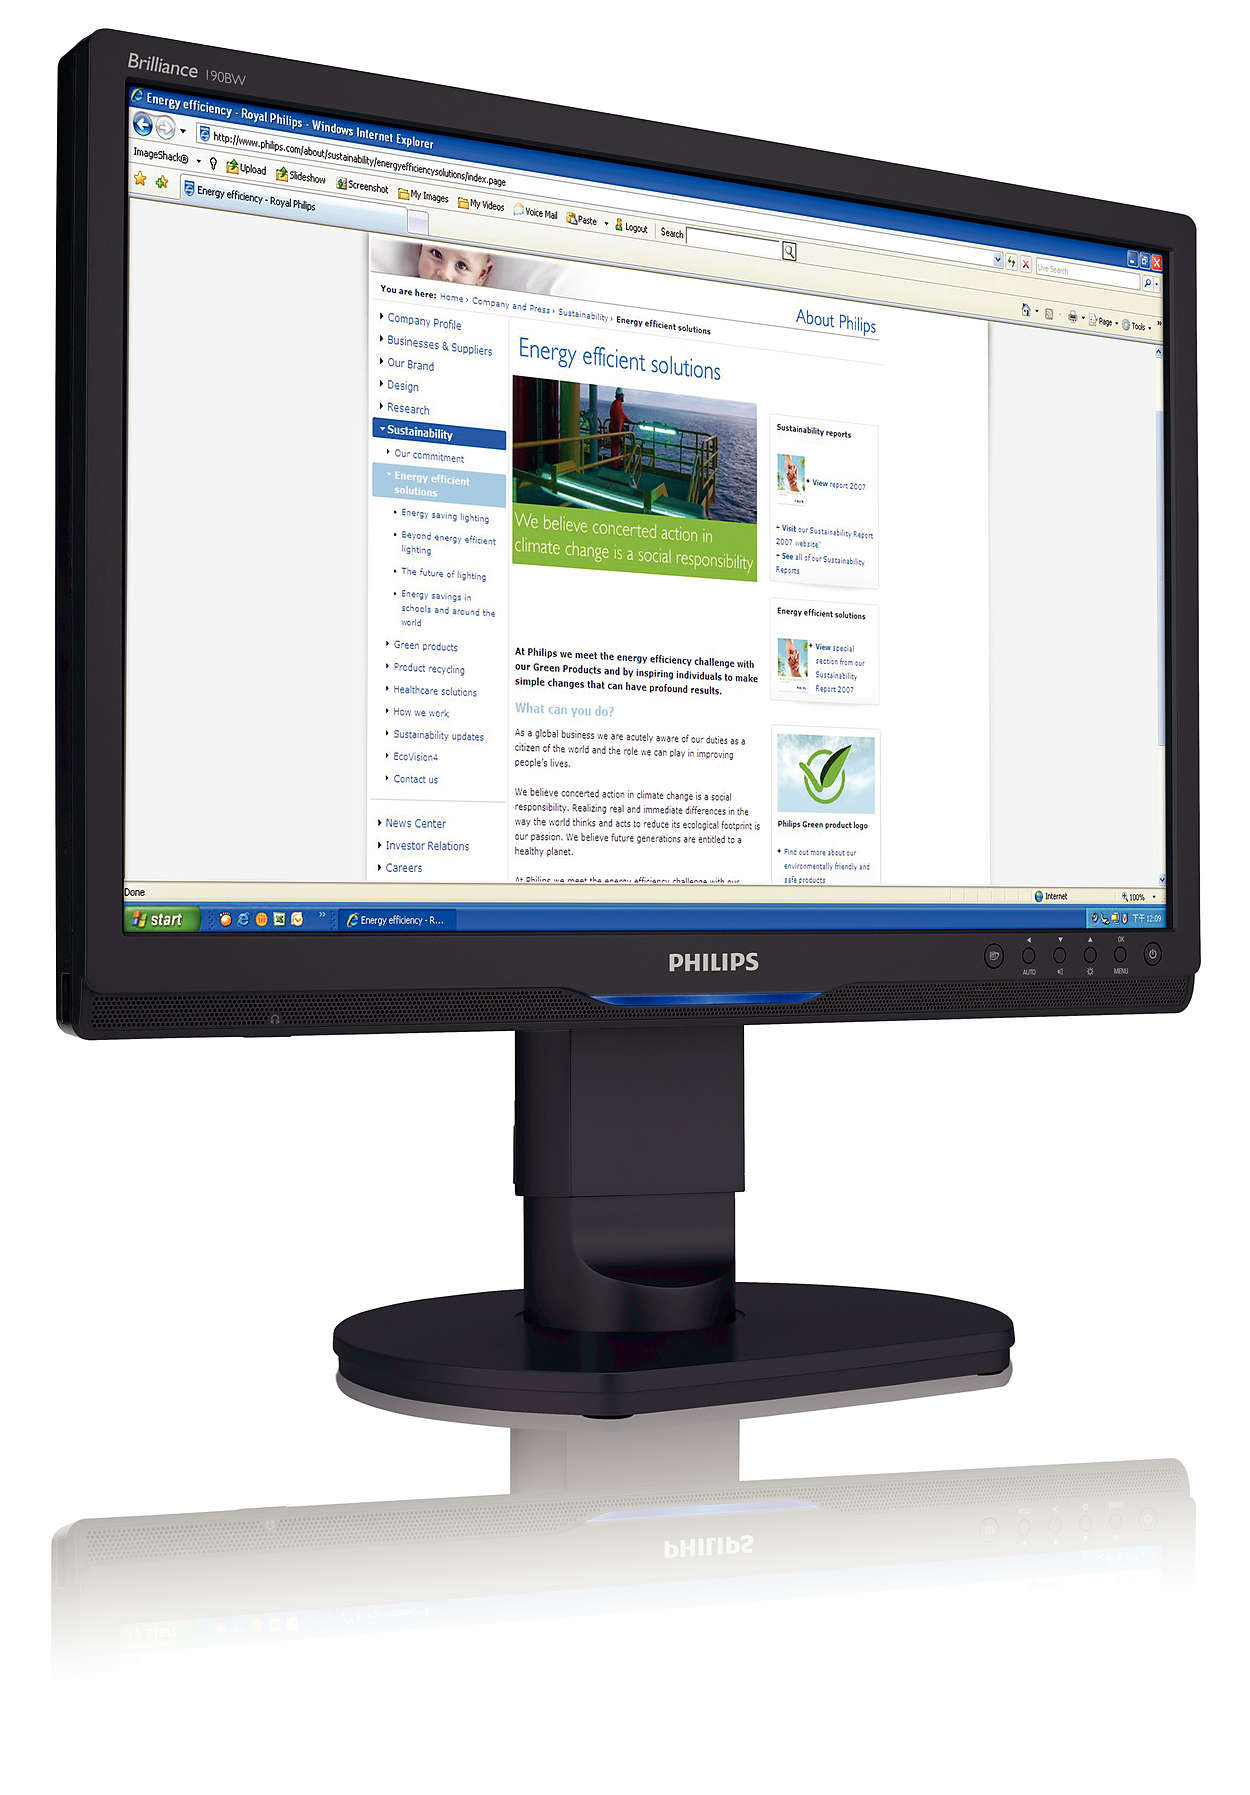 High resolution ergonomic widescreen for business